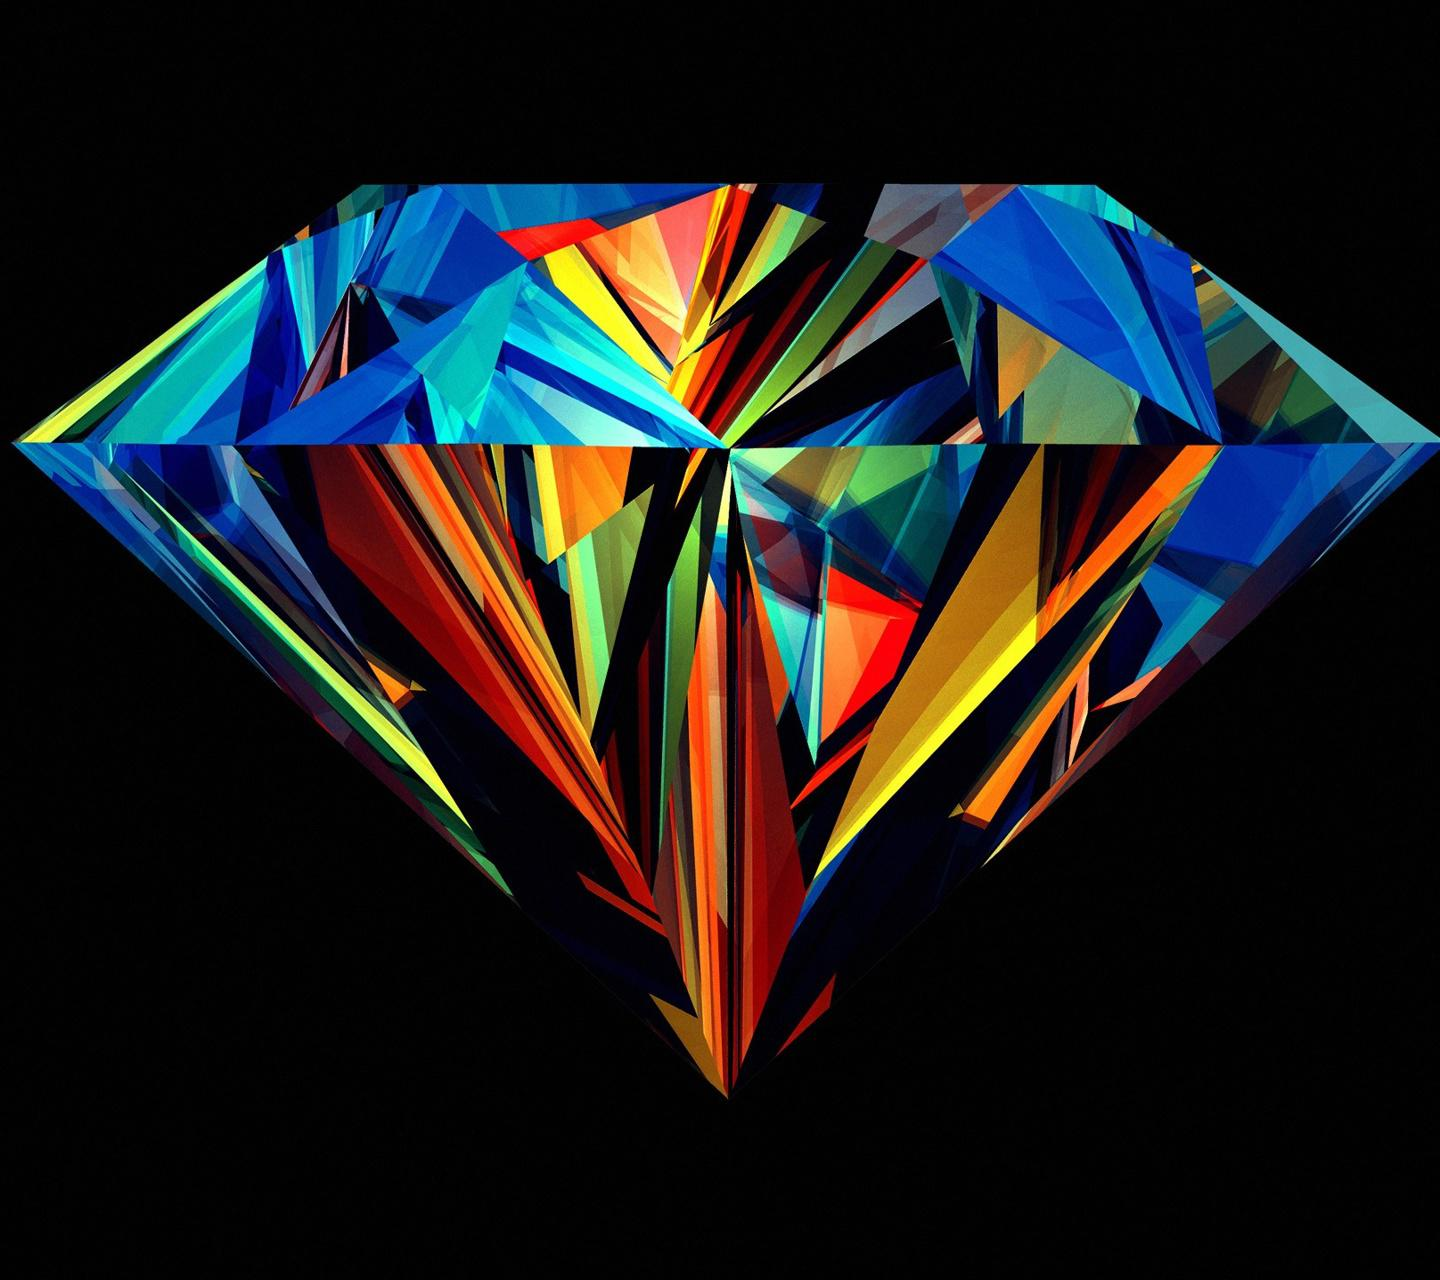 diamond   147584   High Quality and Resolution Wallpapers 1440x1280